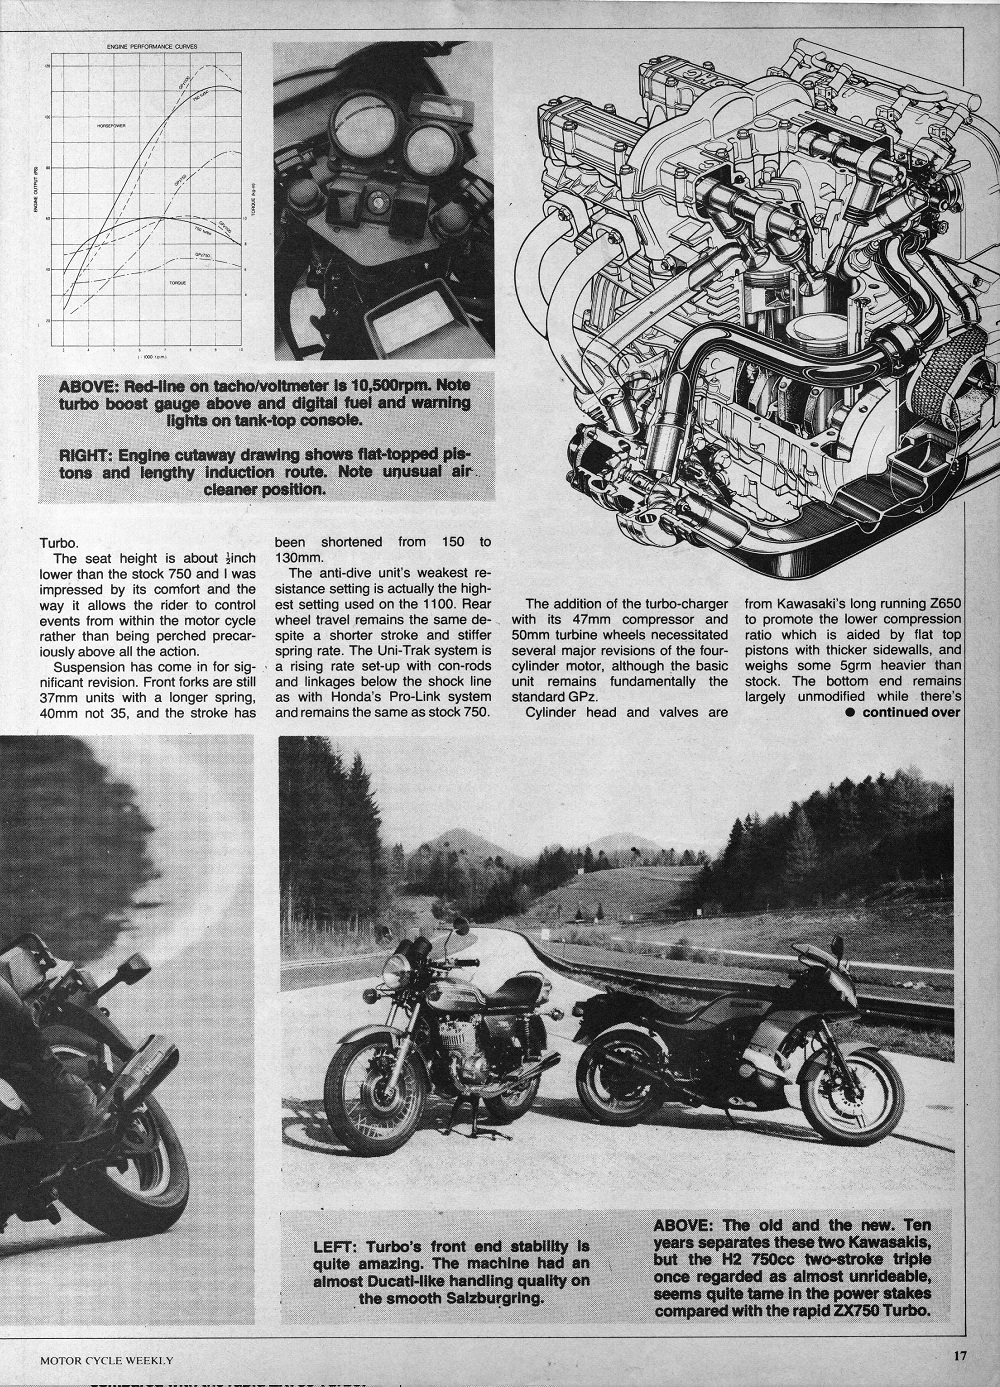 1983 Kawasaki Gpz750 Turbo road test.3.jpg